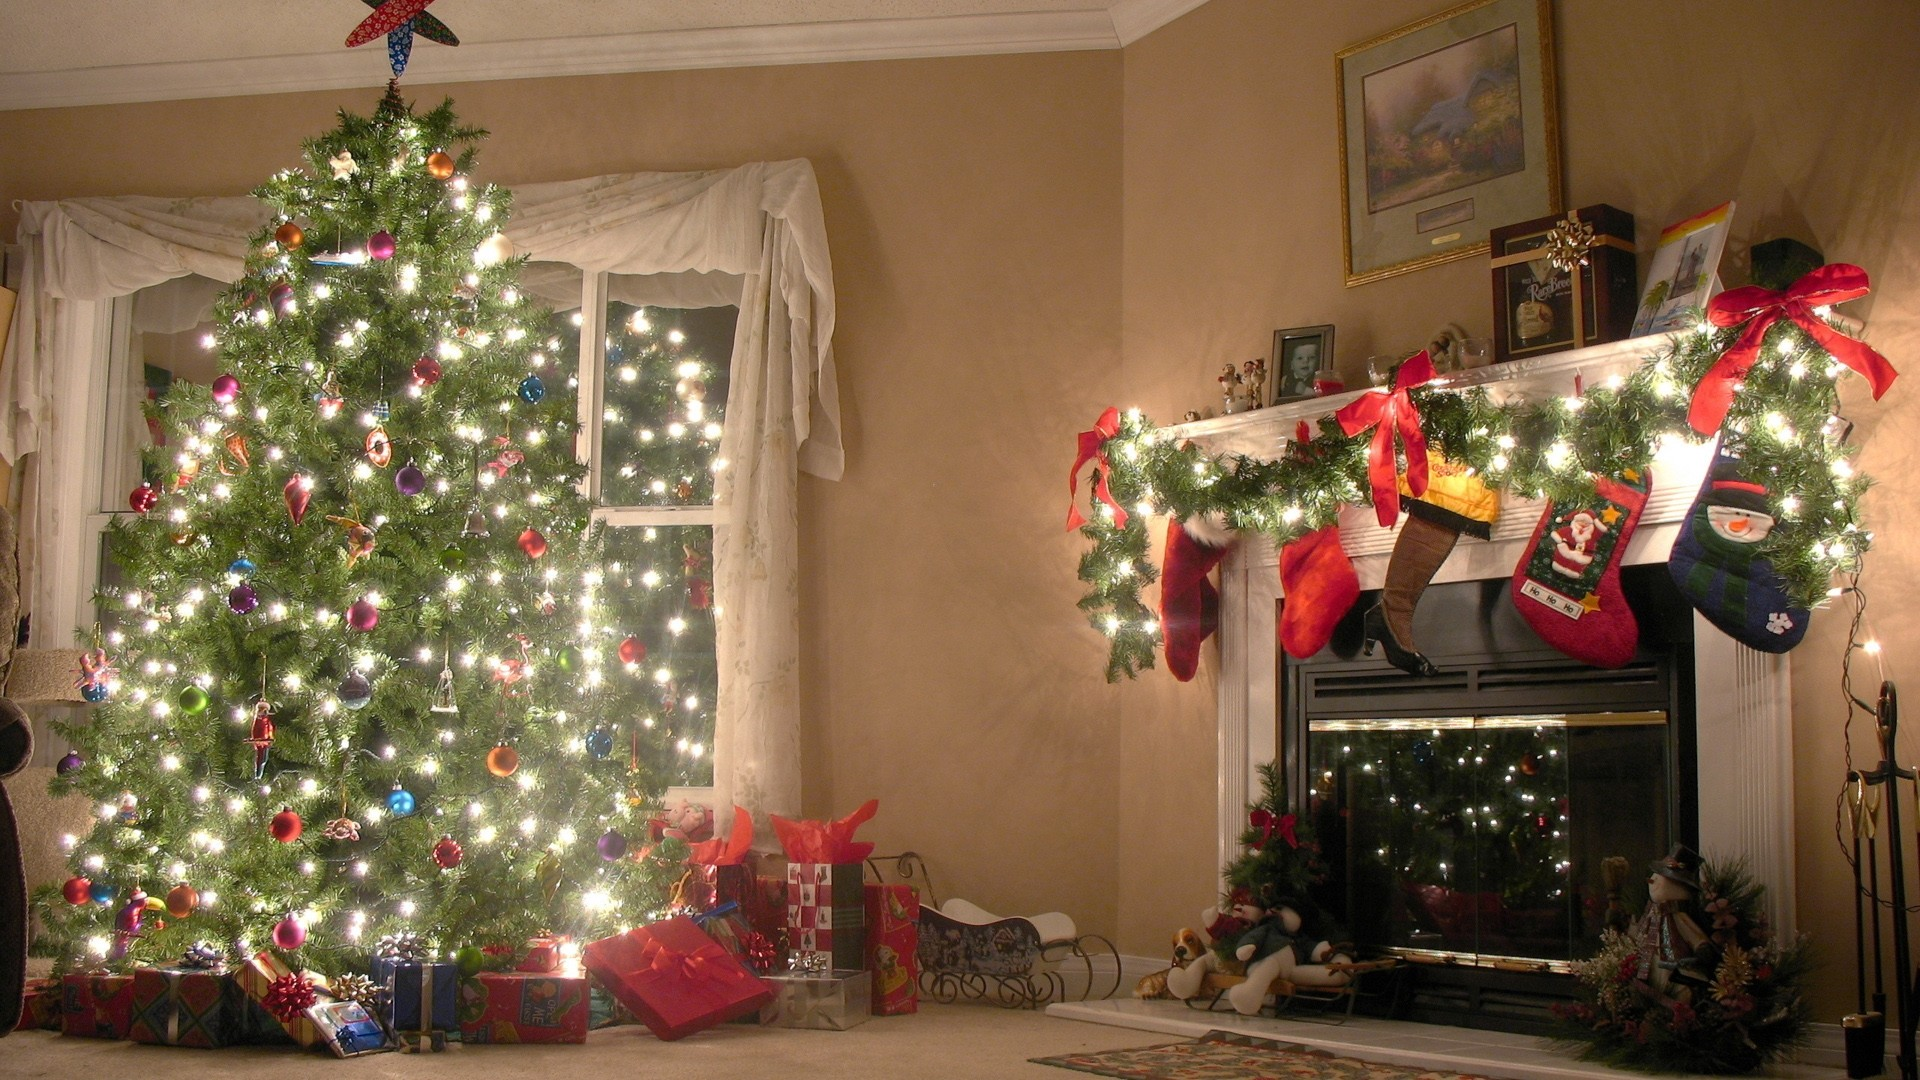 Preview wallpaper new year, christmas tree, decorations 1920×1080